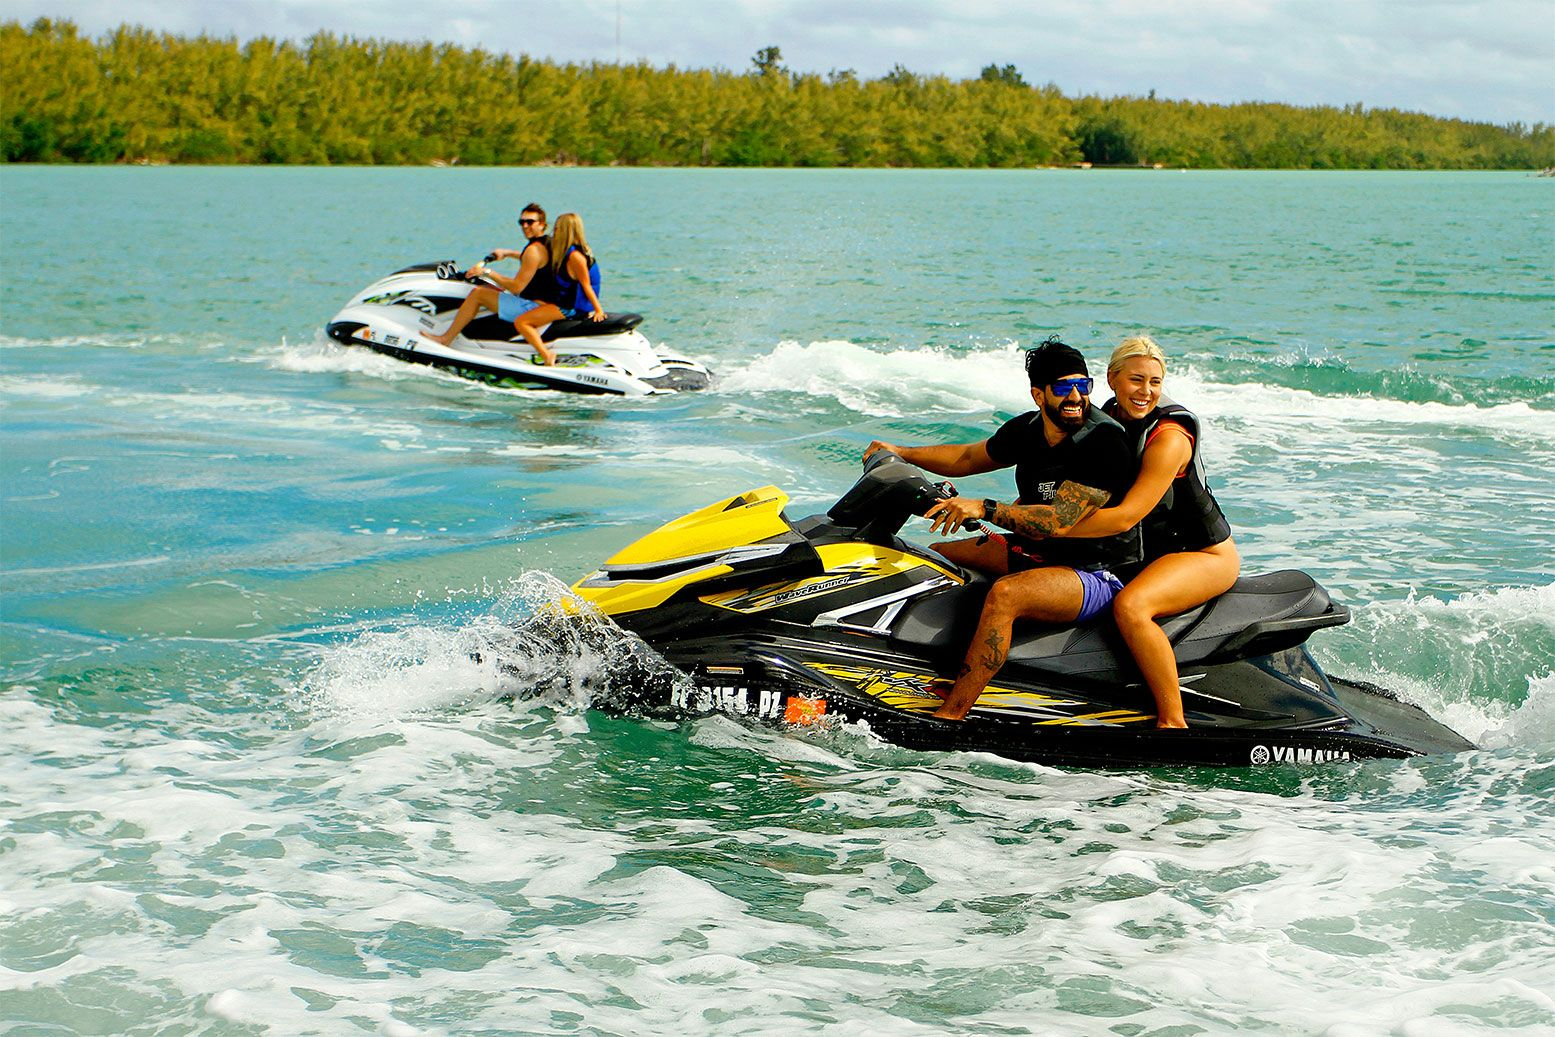 Crazywavesmiami Com Provides Party Boat And Yacht Rentals In